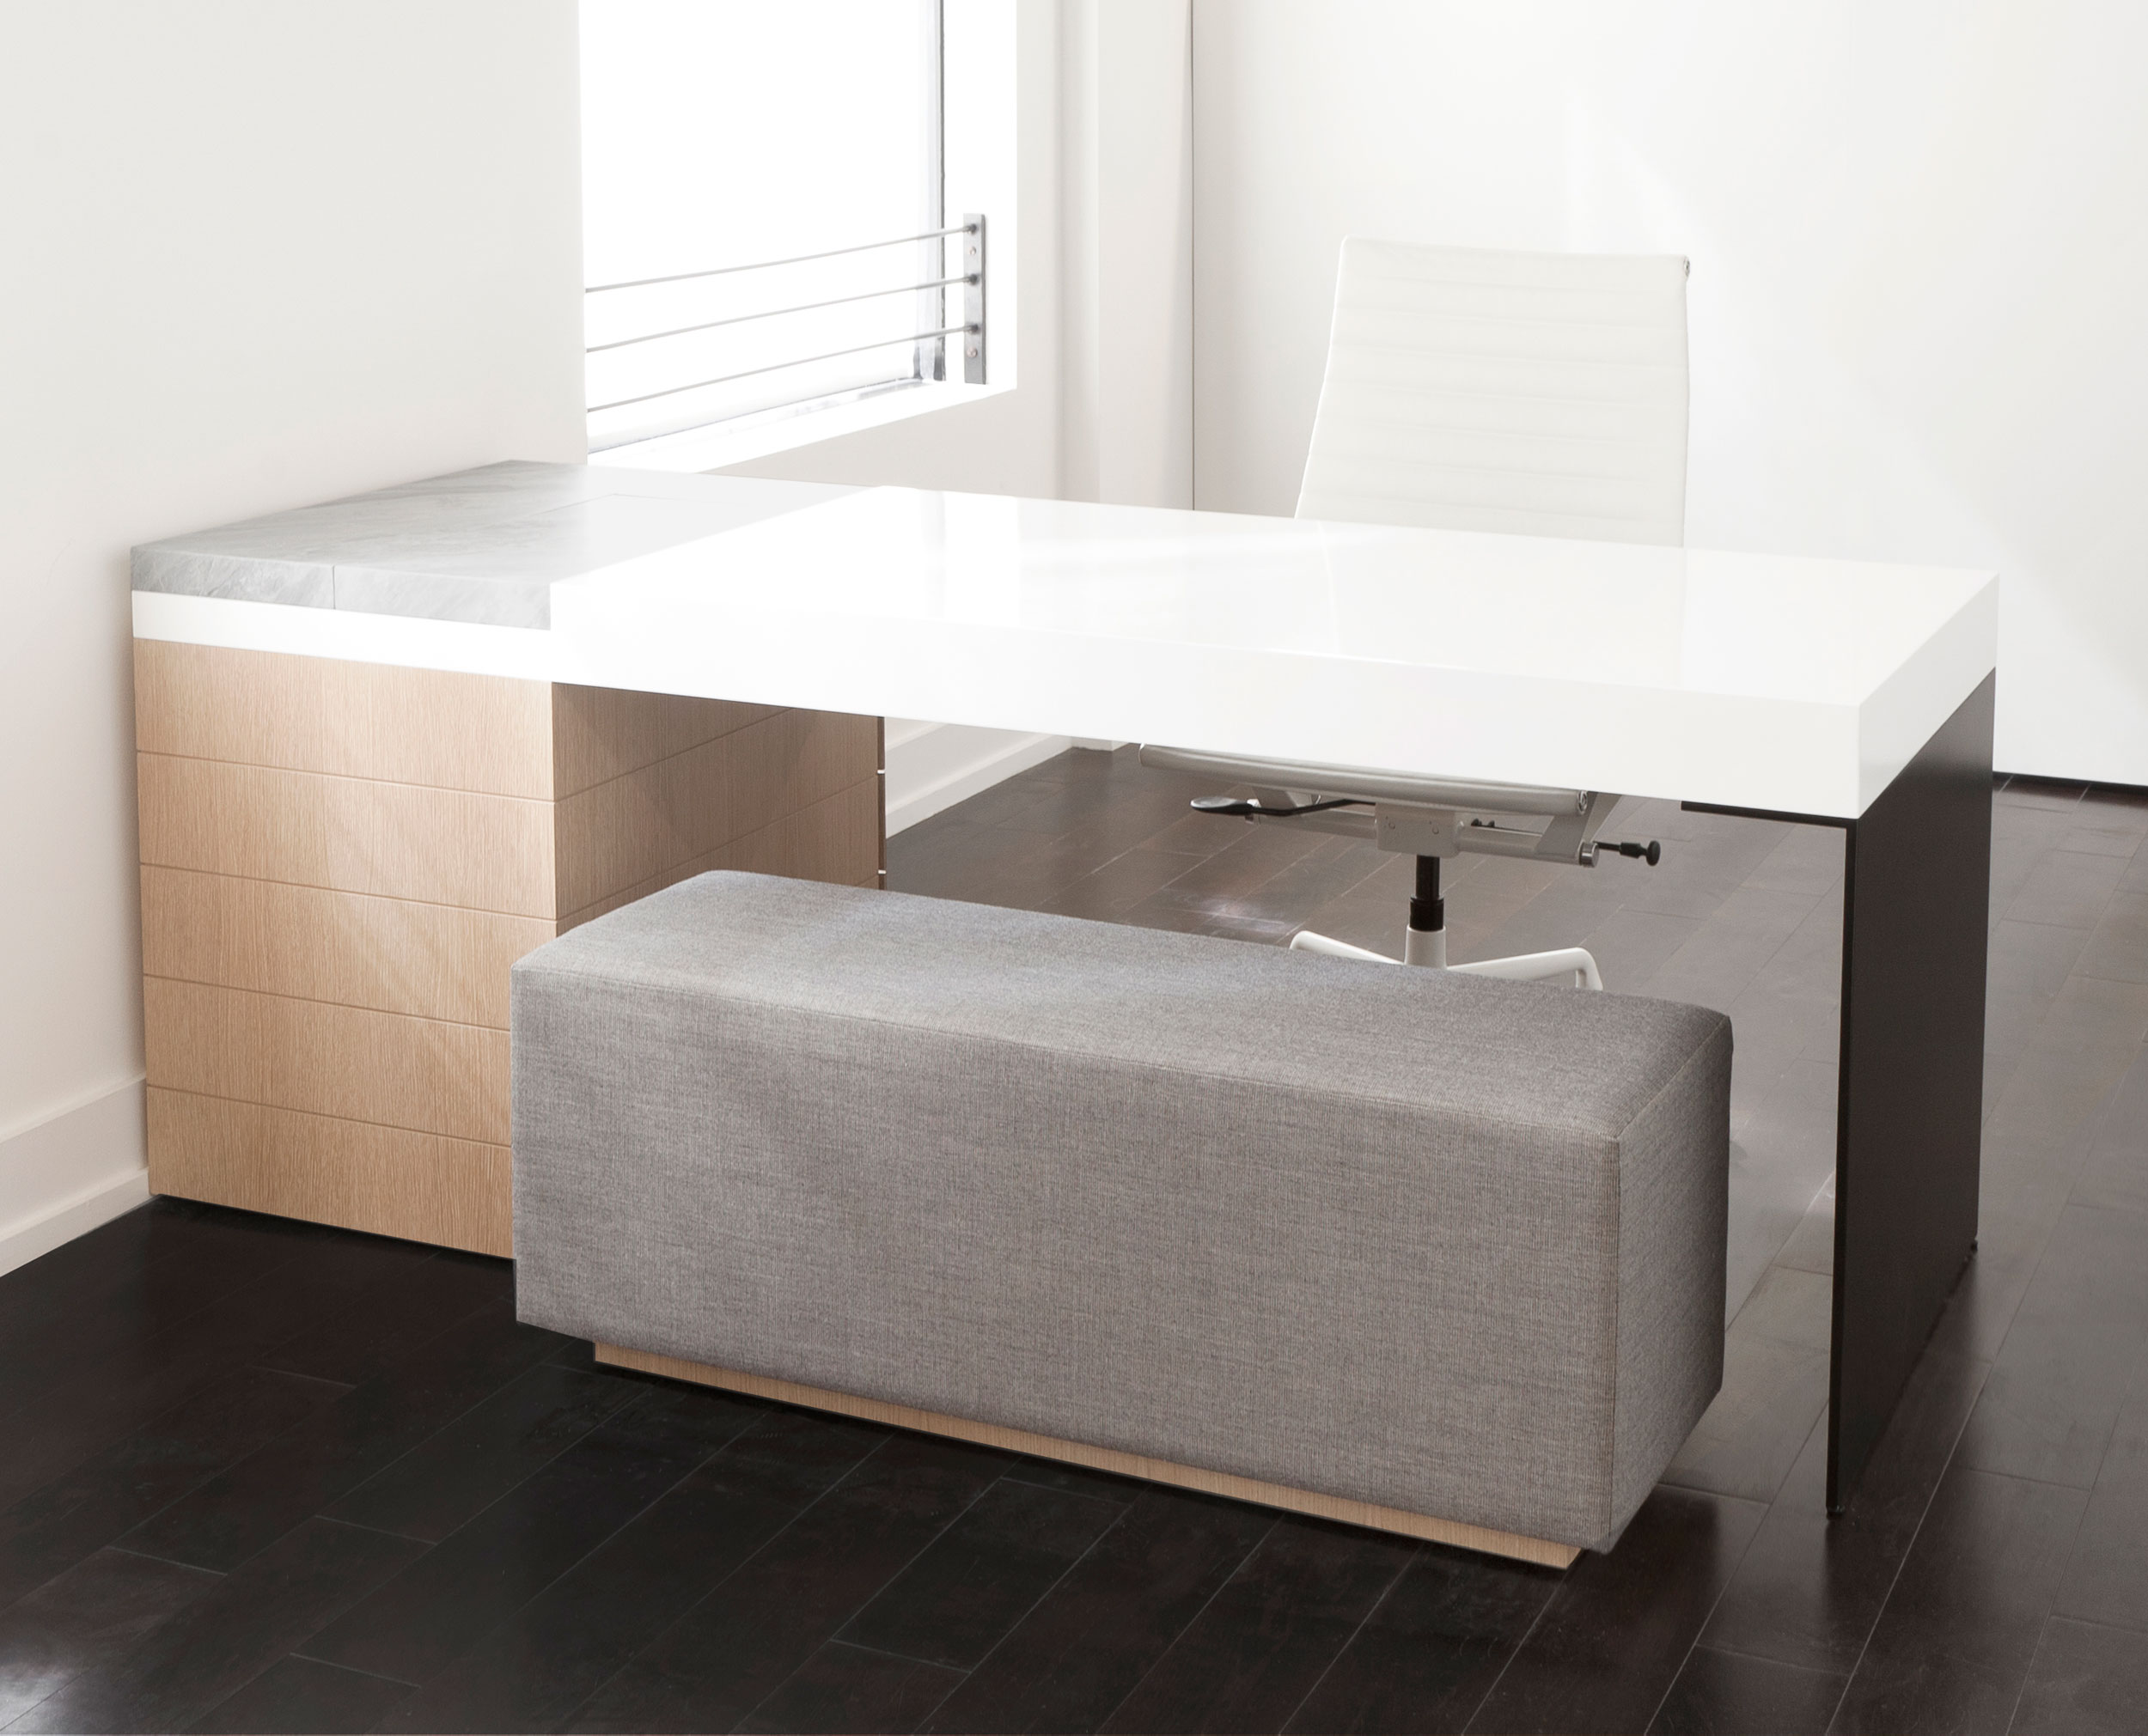 Grace's appointment desk, inspired by the concept of stacking, was designed and built using a single bent sheet of aluminum, white oak, lacquered MDF and marble.